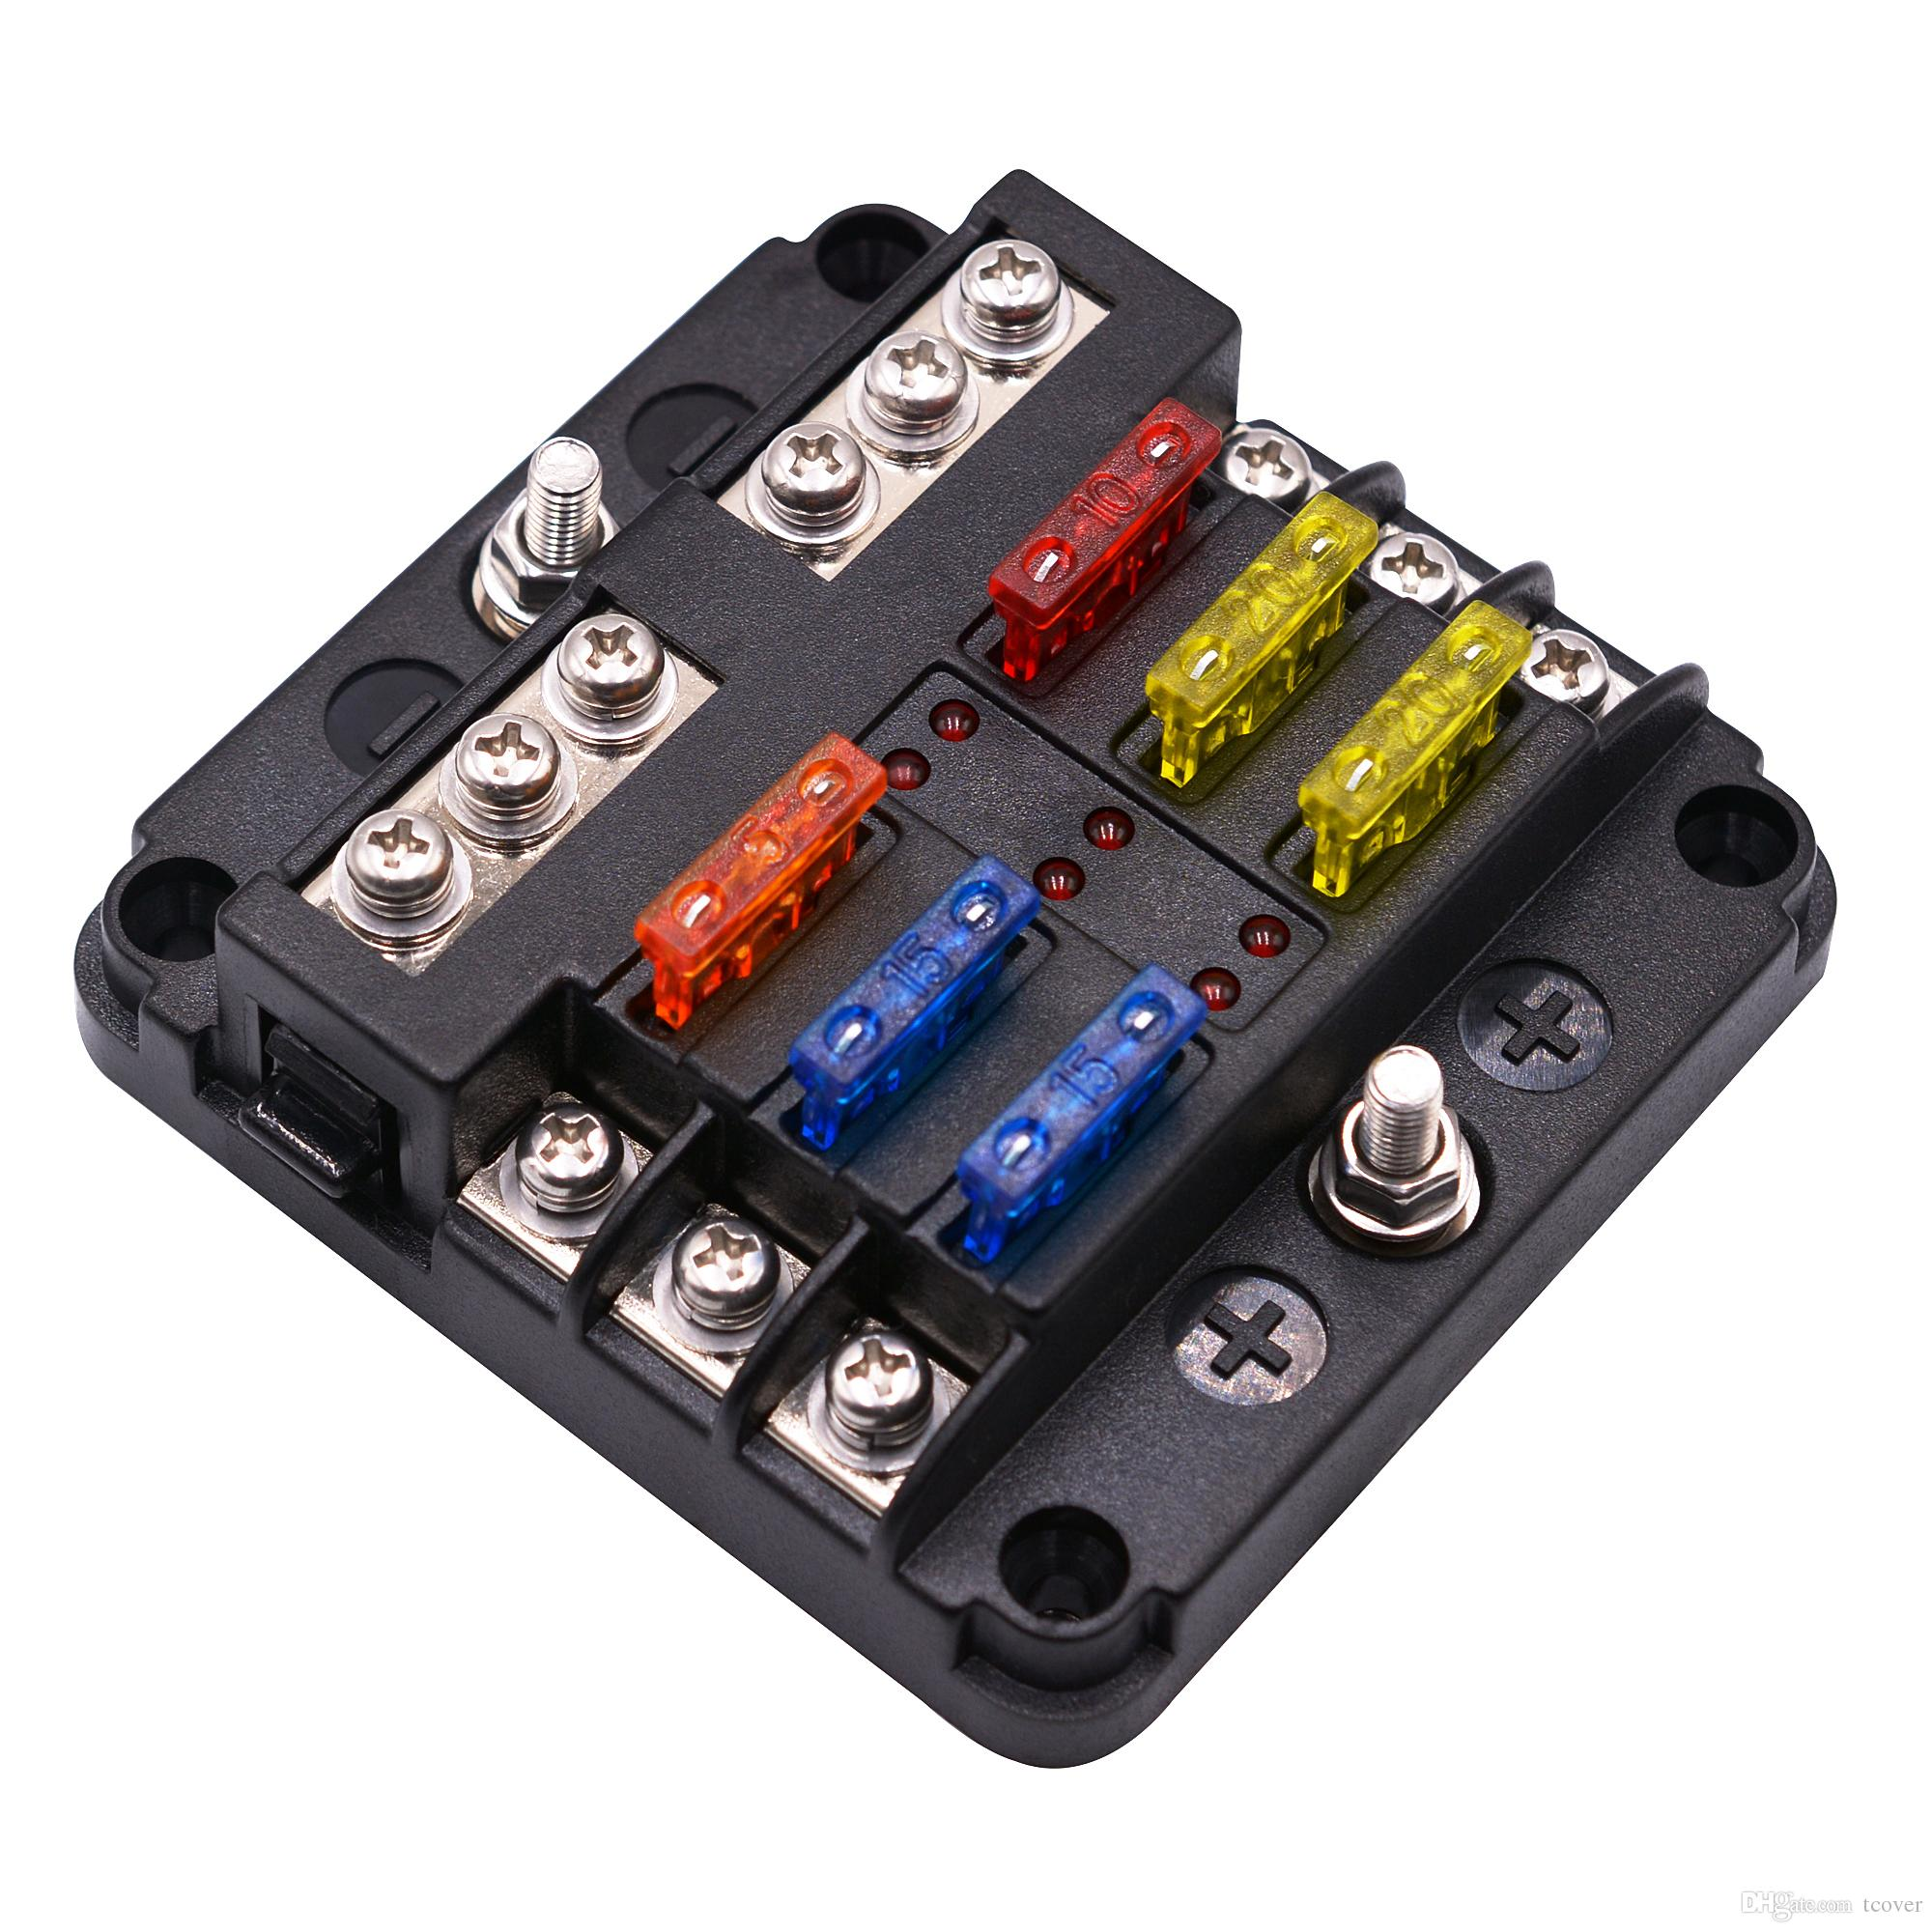 hight resolution of st blade fuse block with led warning indicator damp proof cover 6 circuits with negative bus fuse box for car boat marine rv truck 85 motorhome fuse box